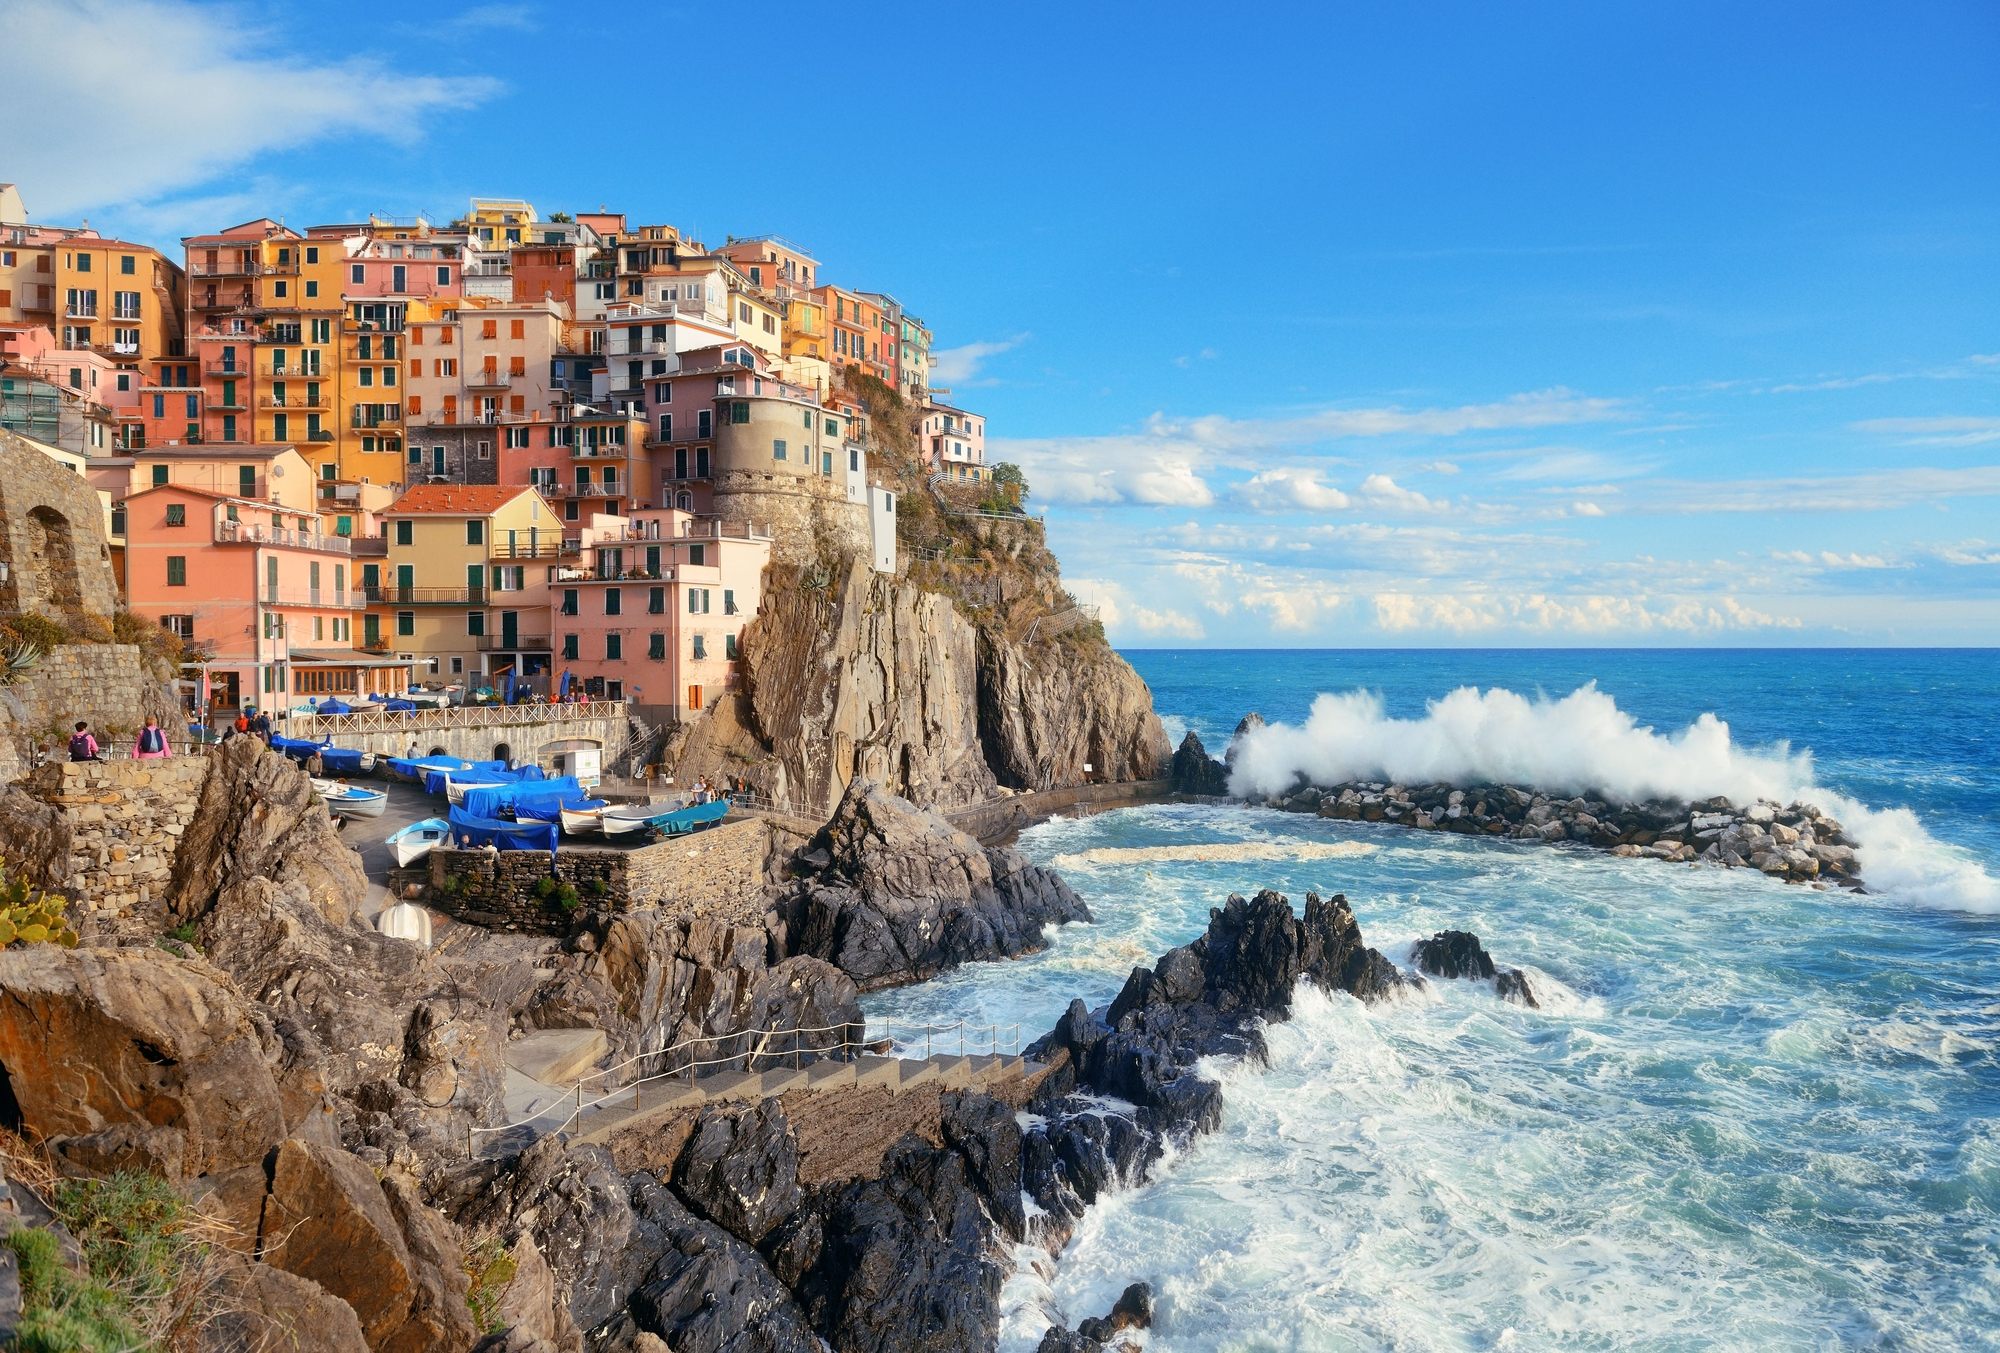 cliff in Cinque Terre, Italy stock photo